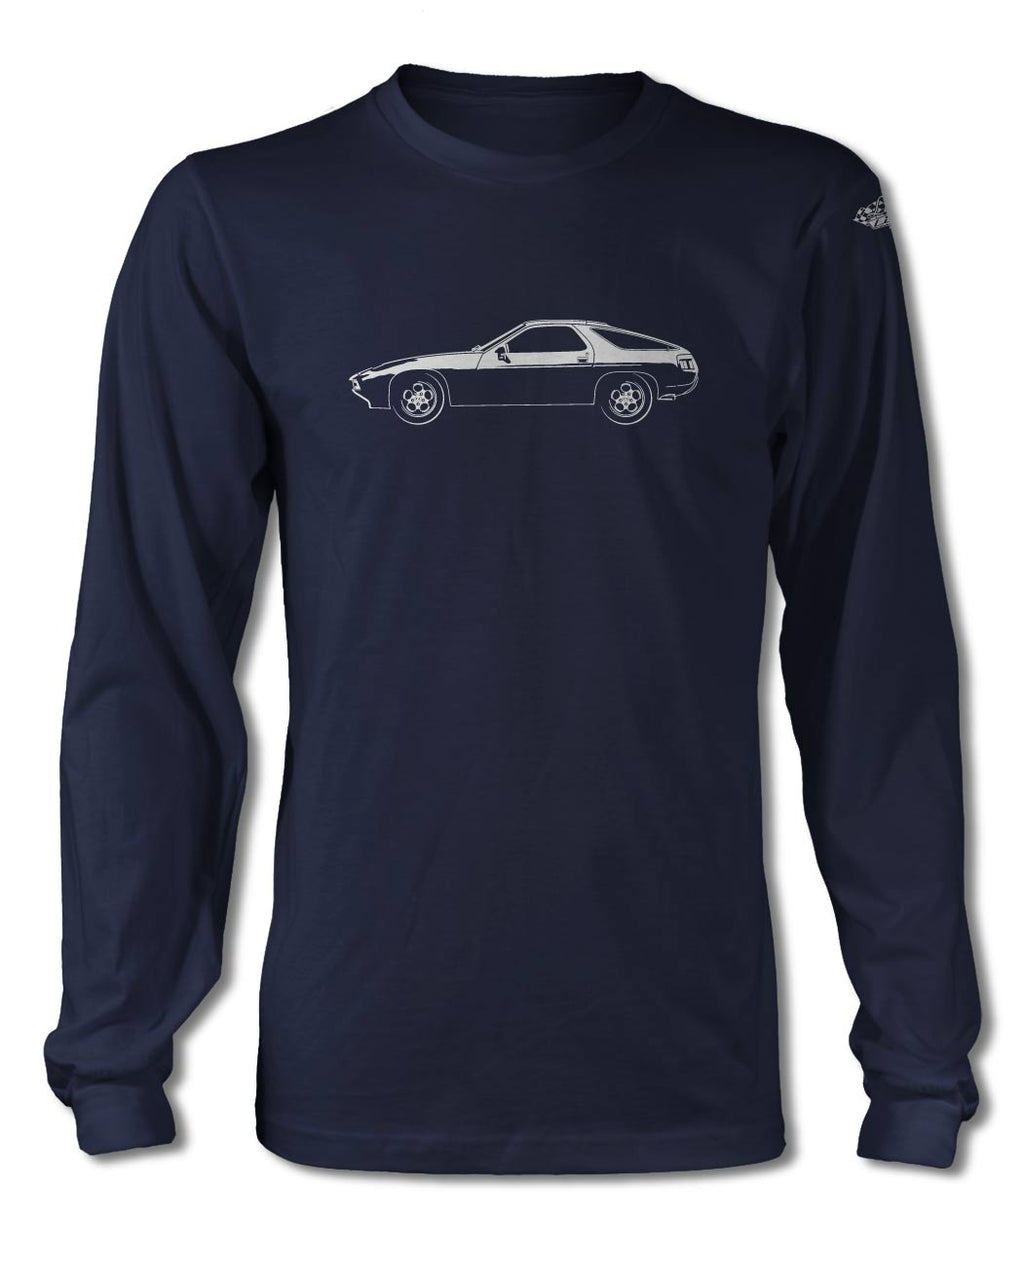 Porsche 928 T-Shirt - Long Sleeves - Side View